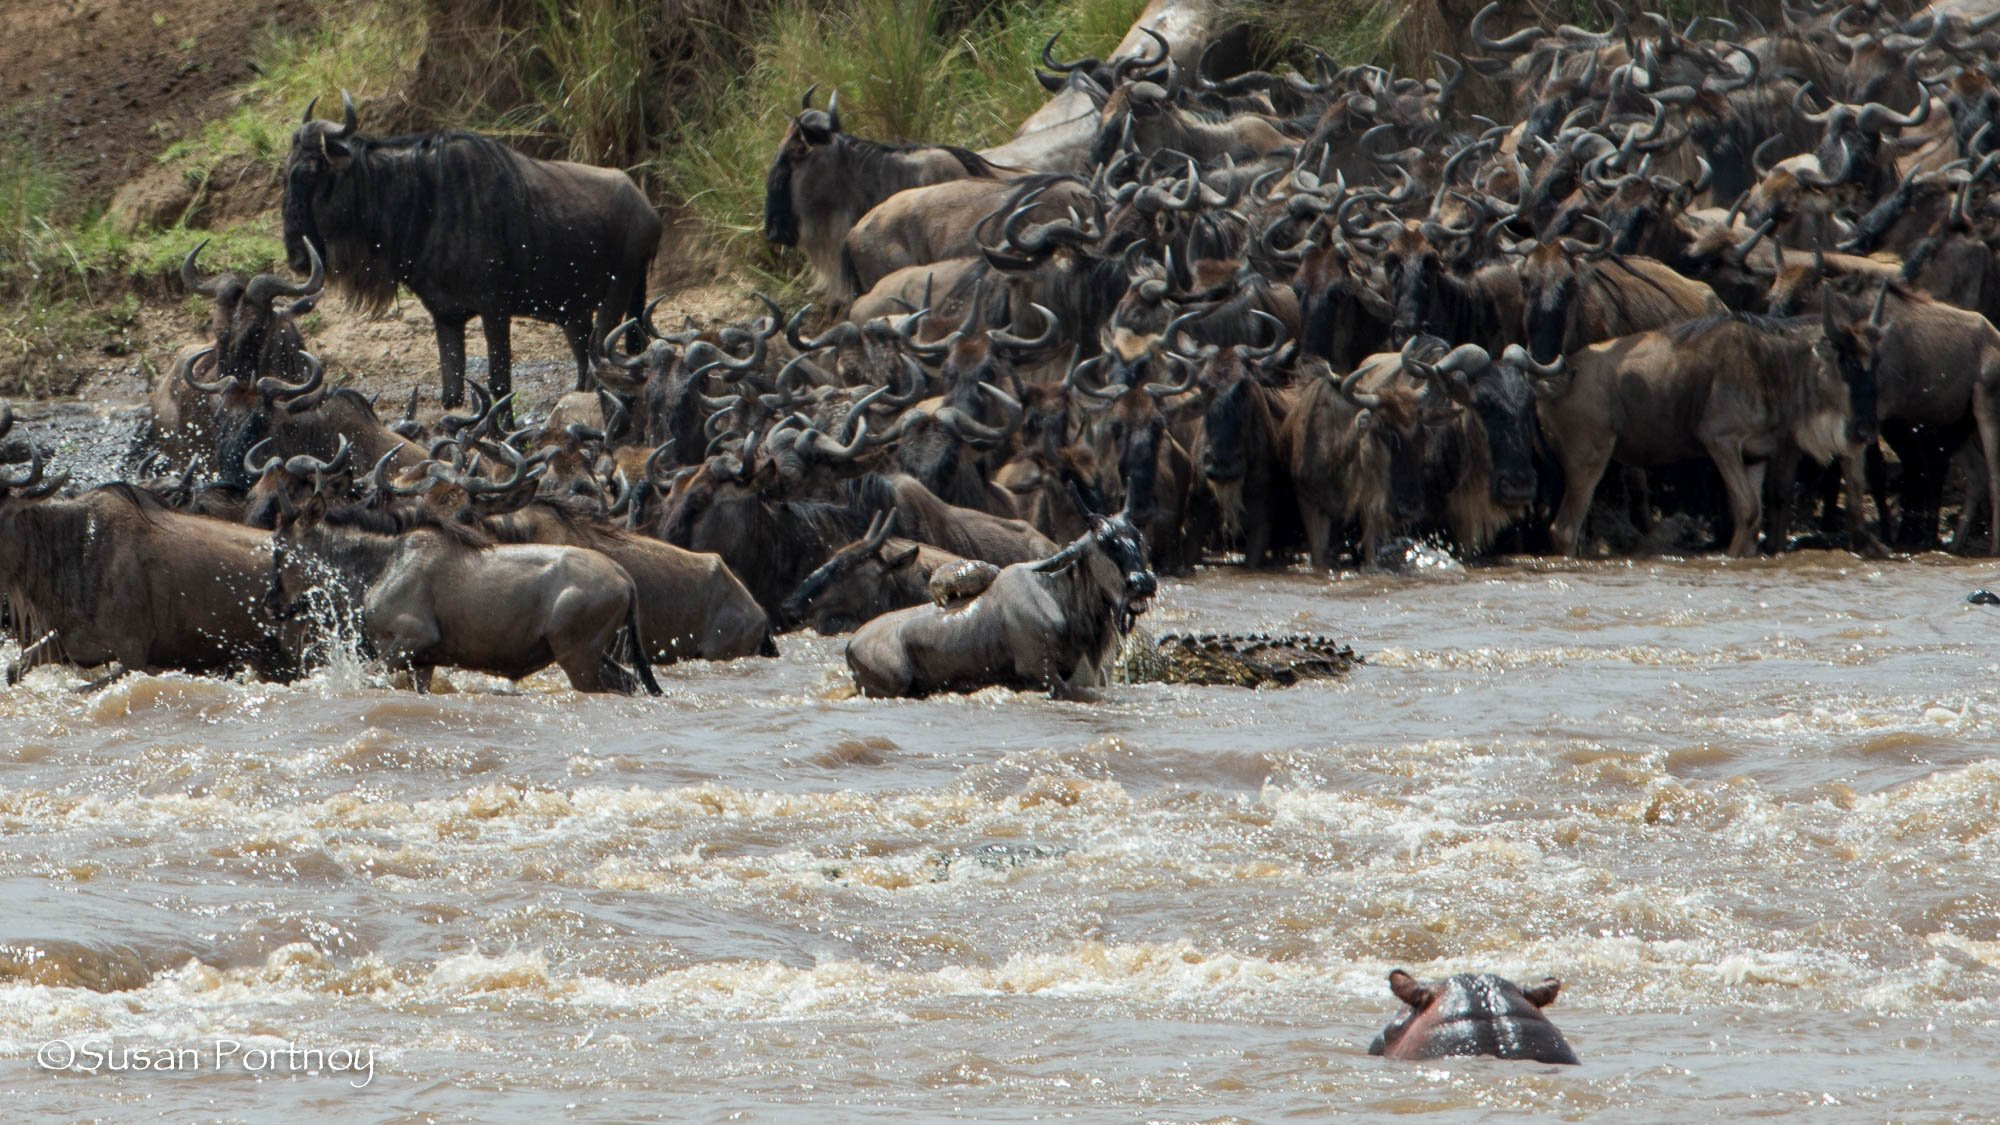 Wildebeest crossing a rive with a hippo watching.